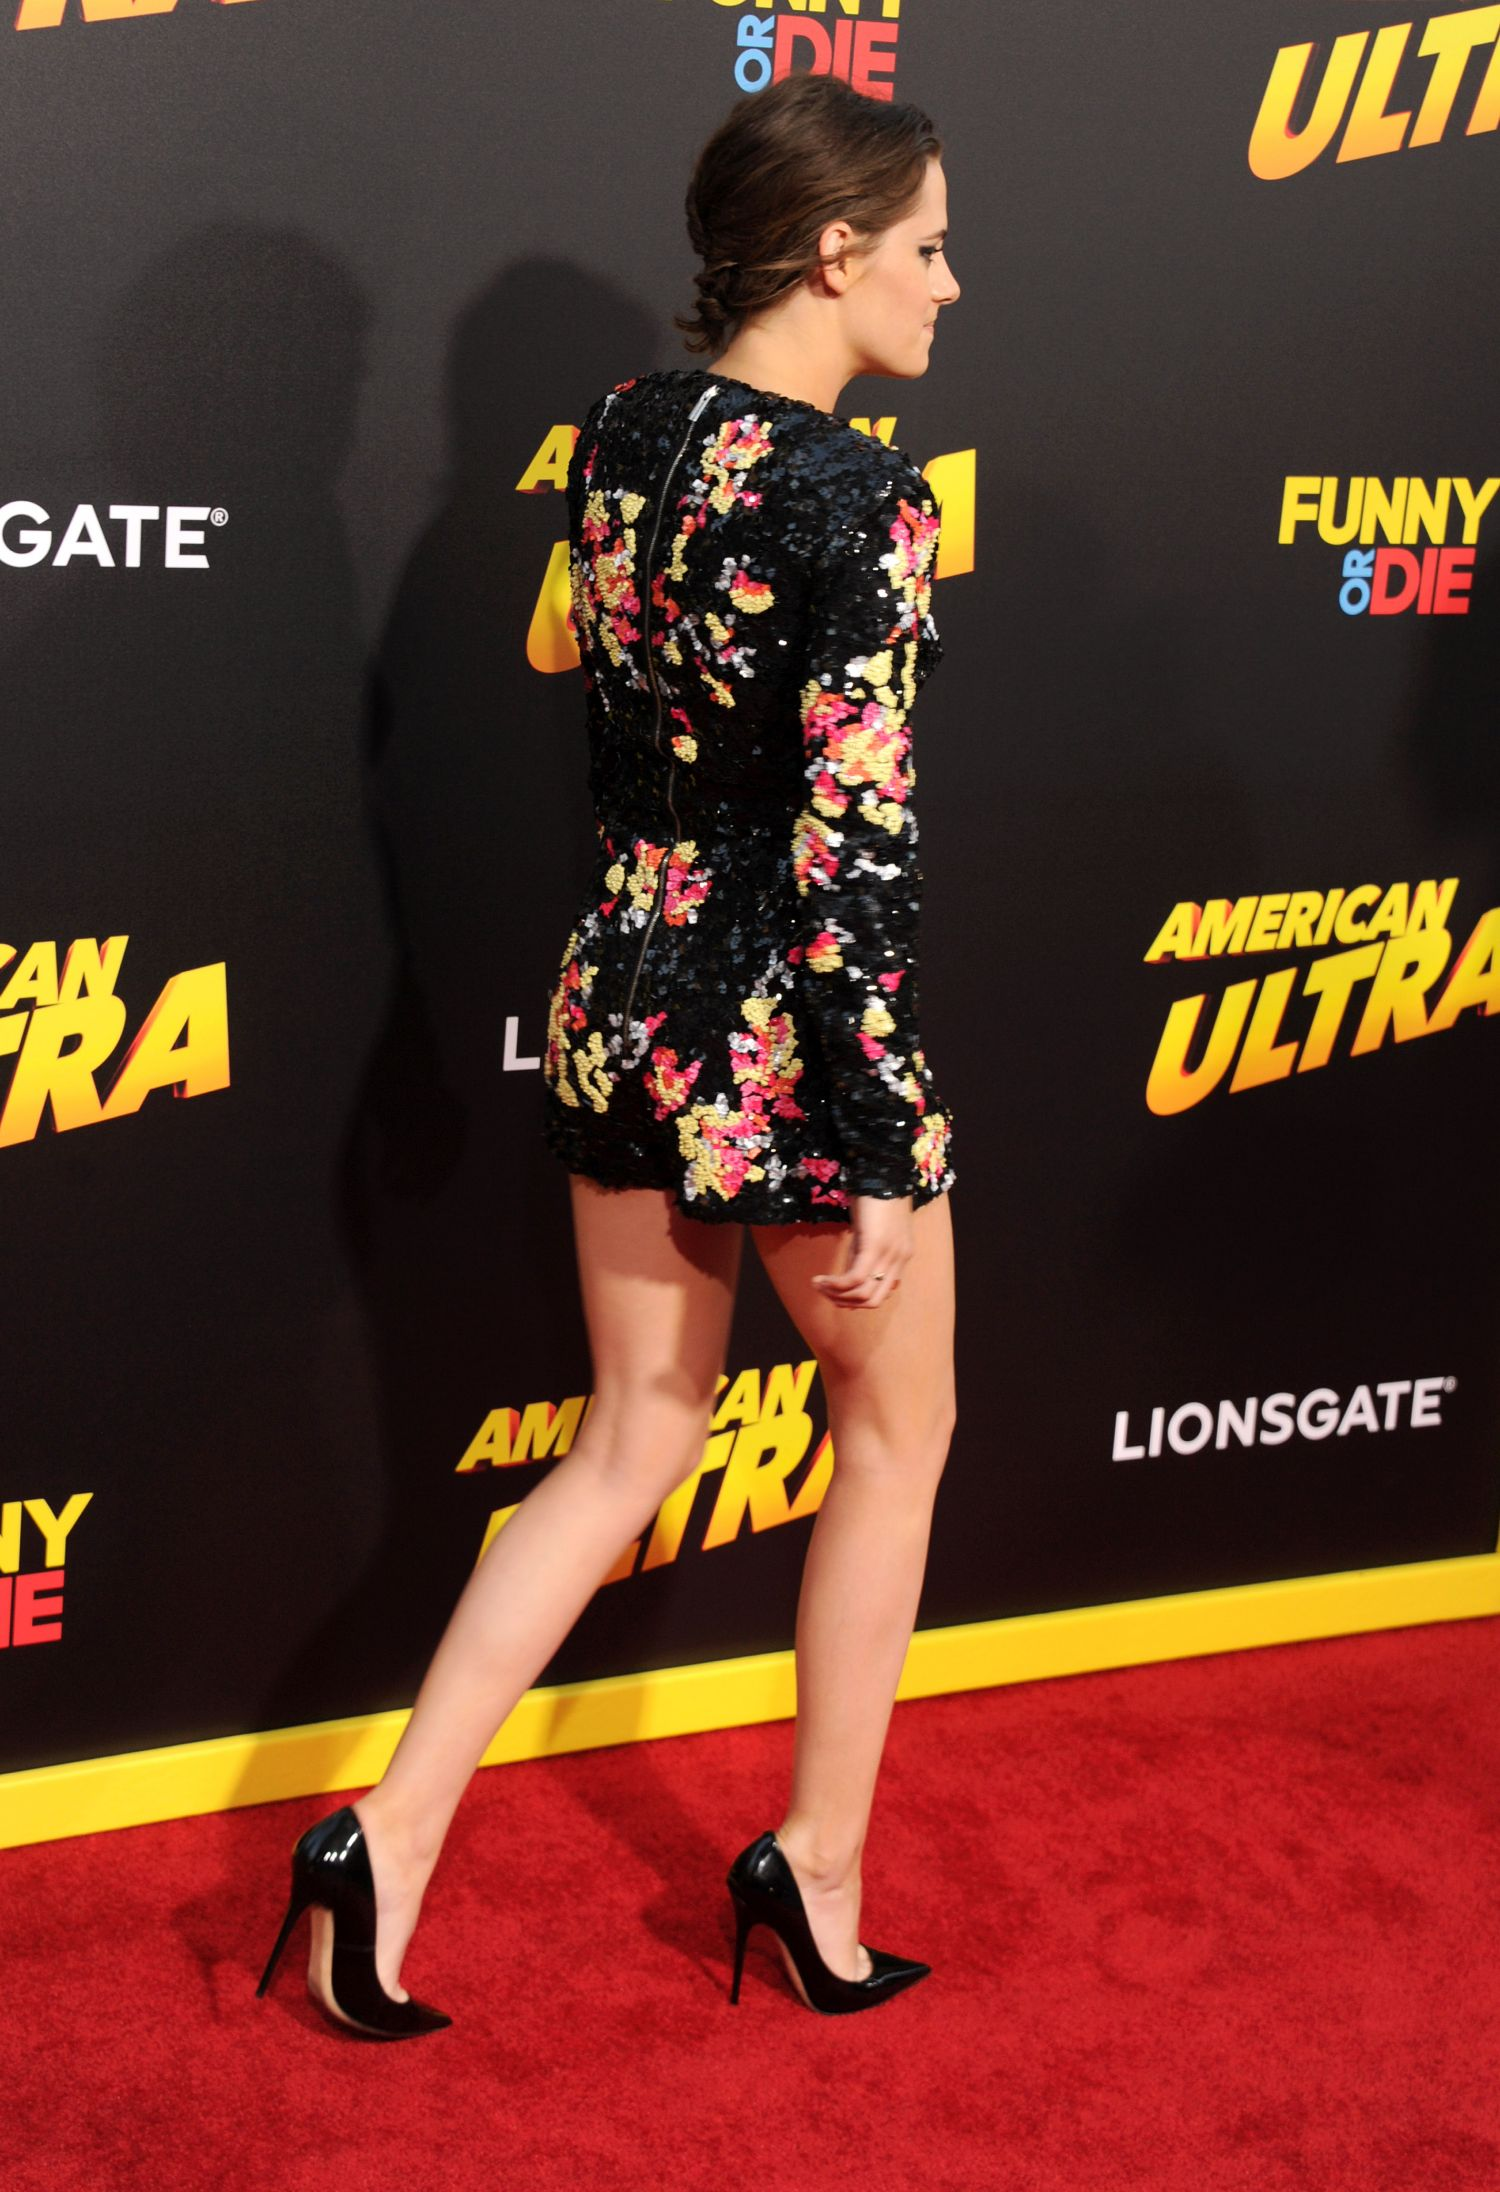 Kristen-Stewart-at-the-Premiere-of-American-Ultra-in-LA-10.jpg